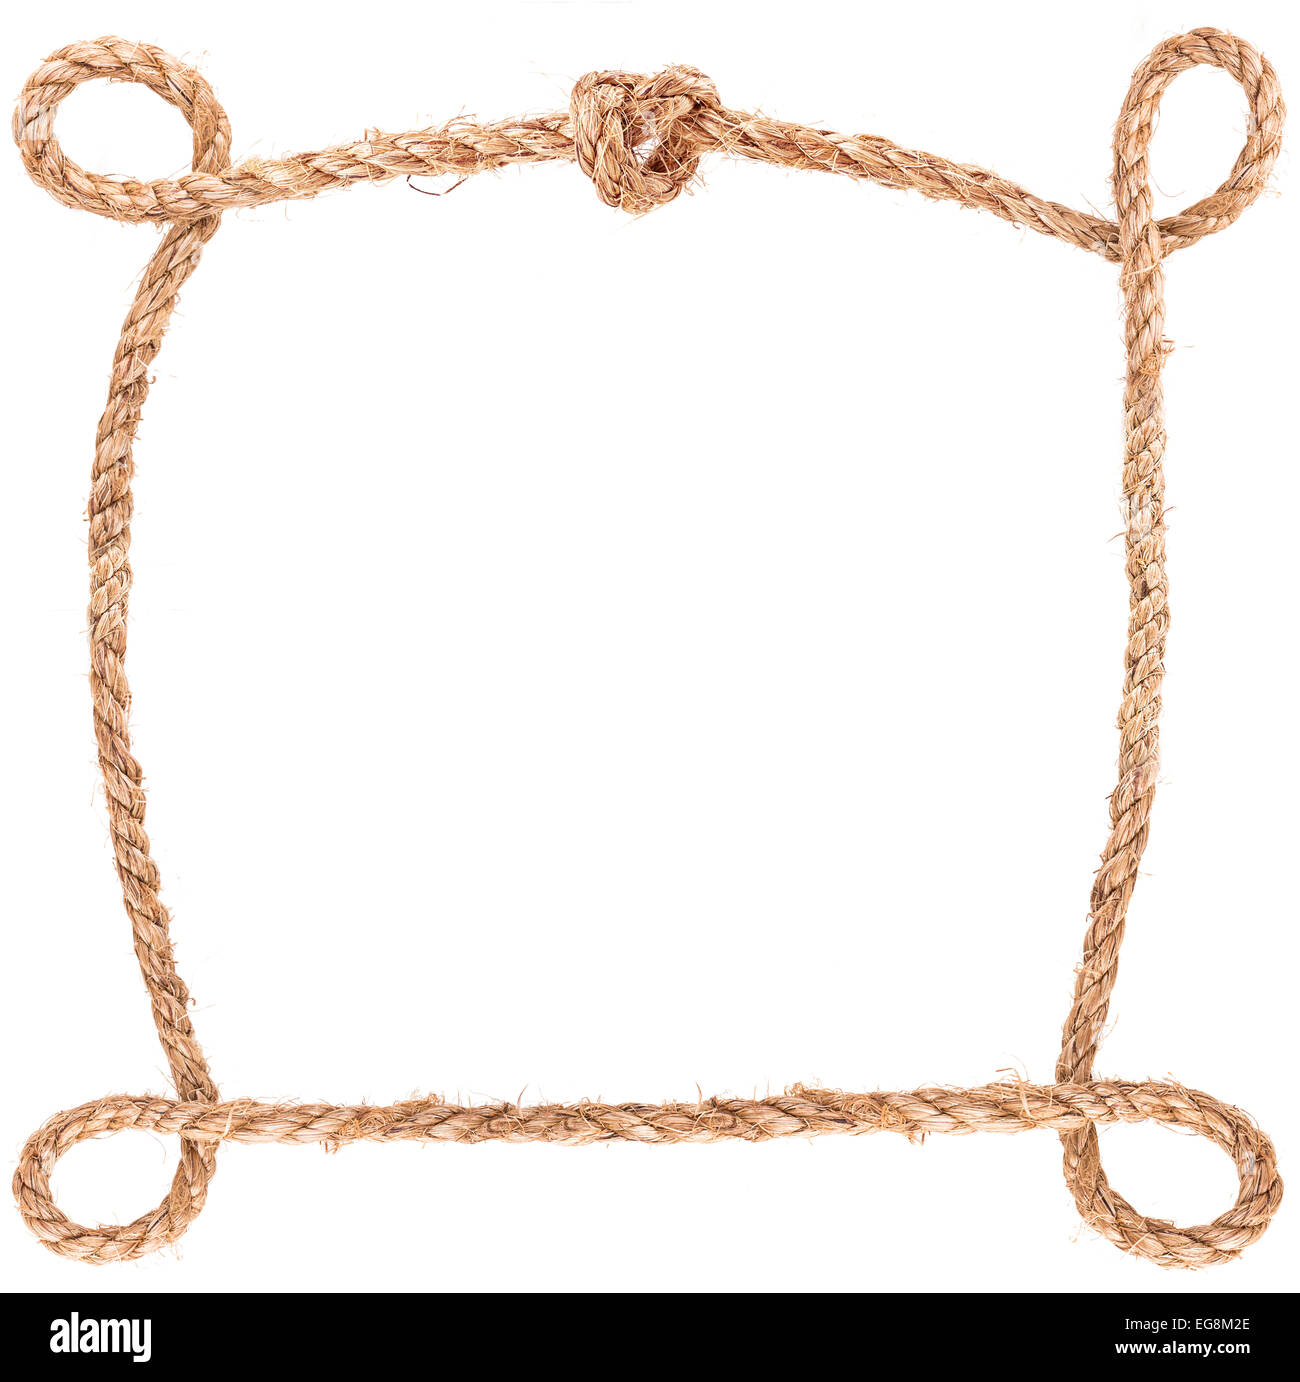 stock photo rope frame knot border isolated